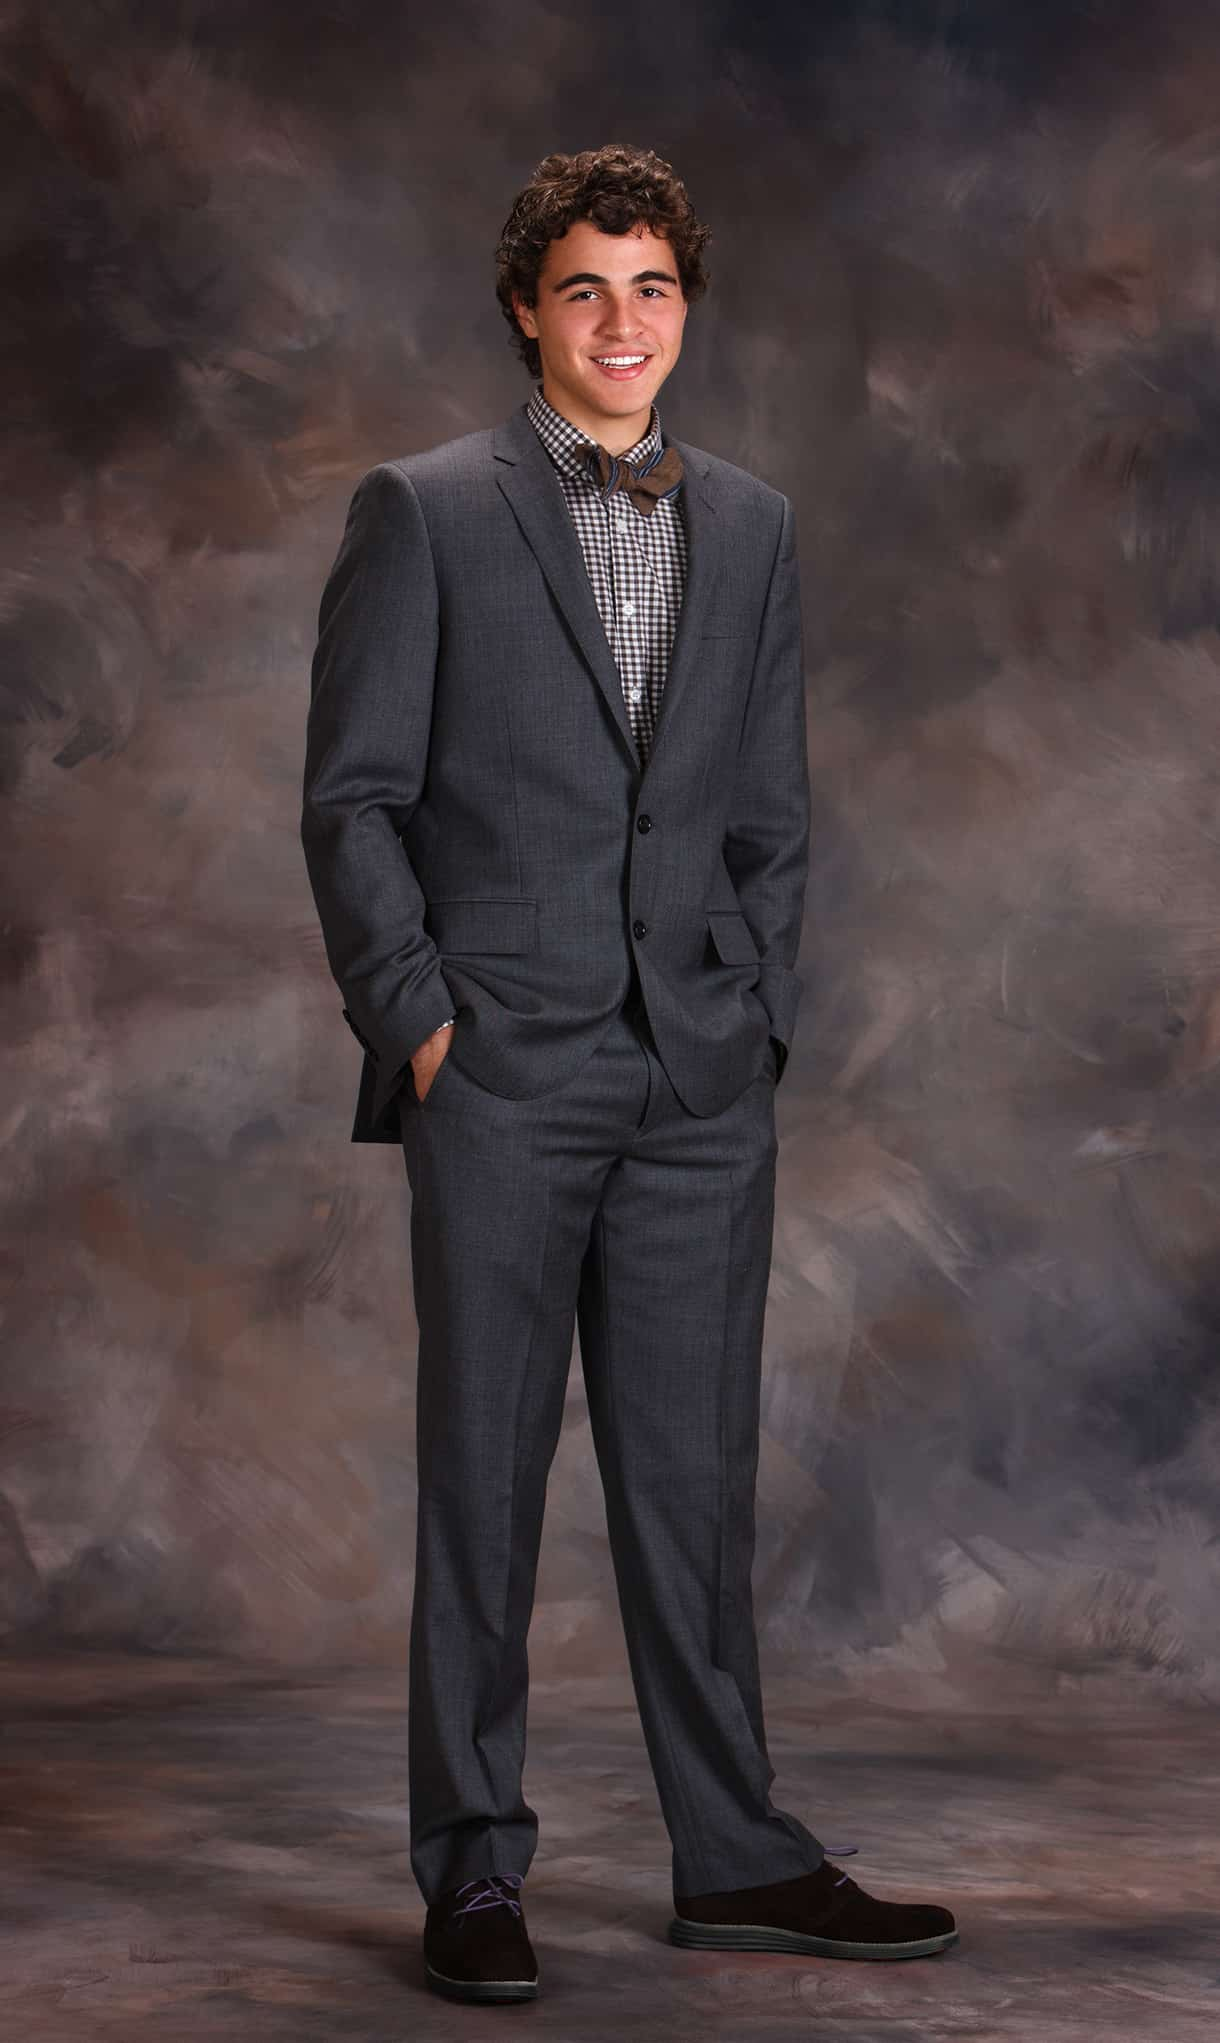 High_school_senior_photographed_in_suit